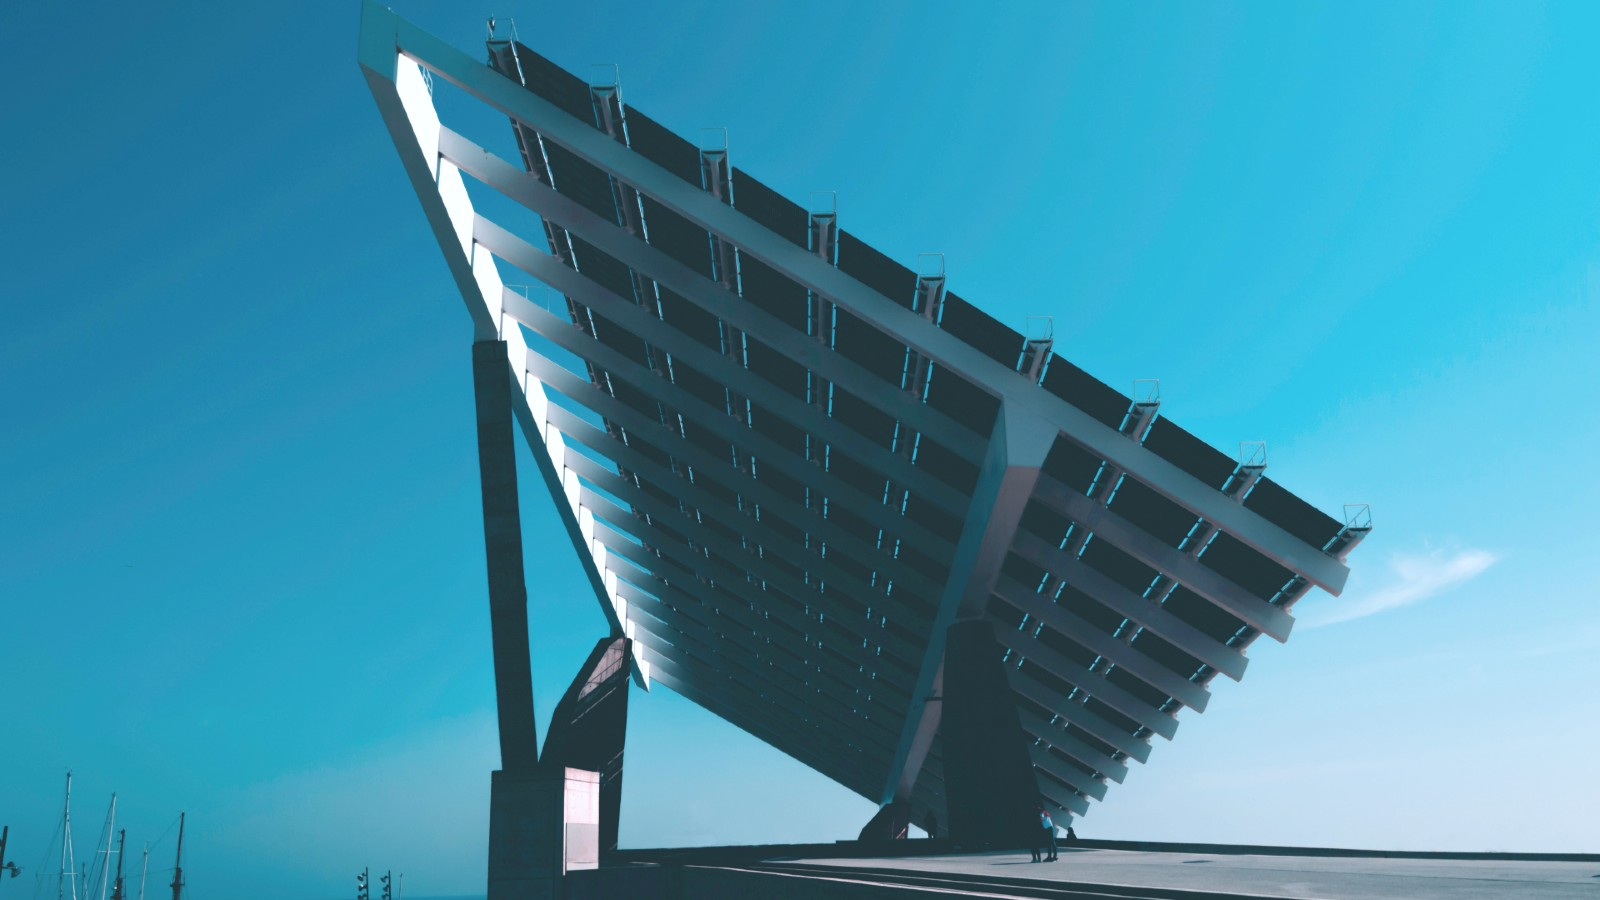 Solar power is a safe investment to make business more profitable